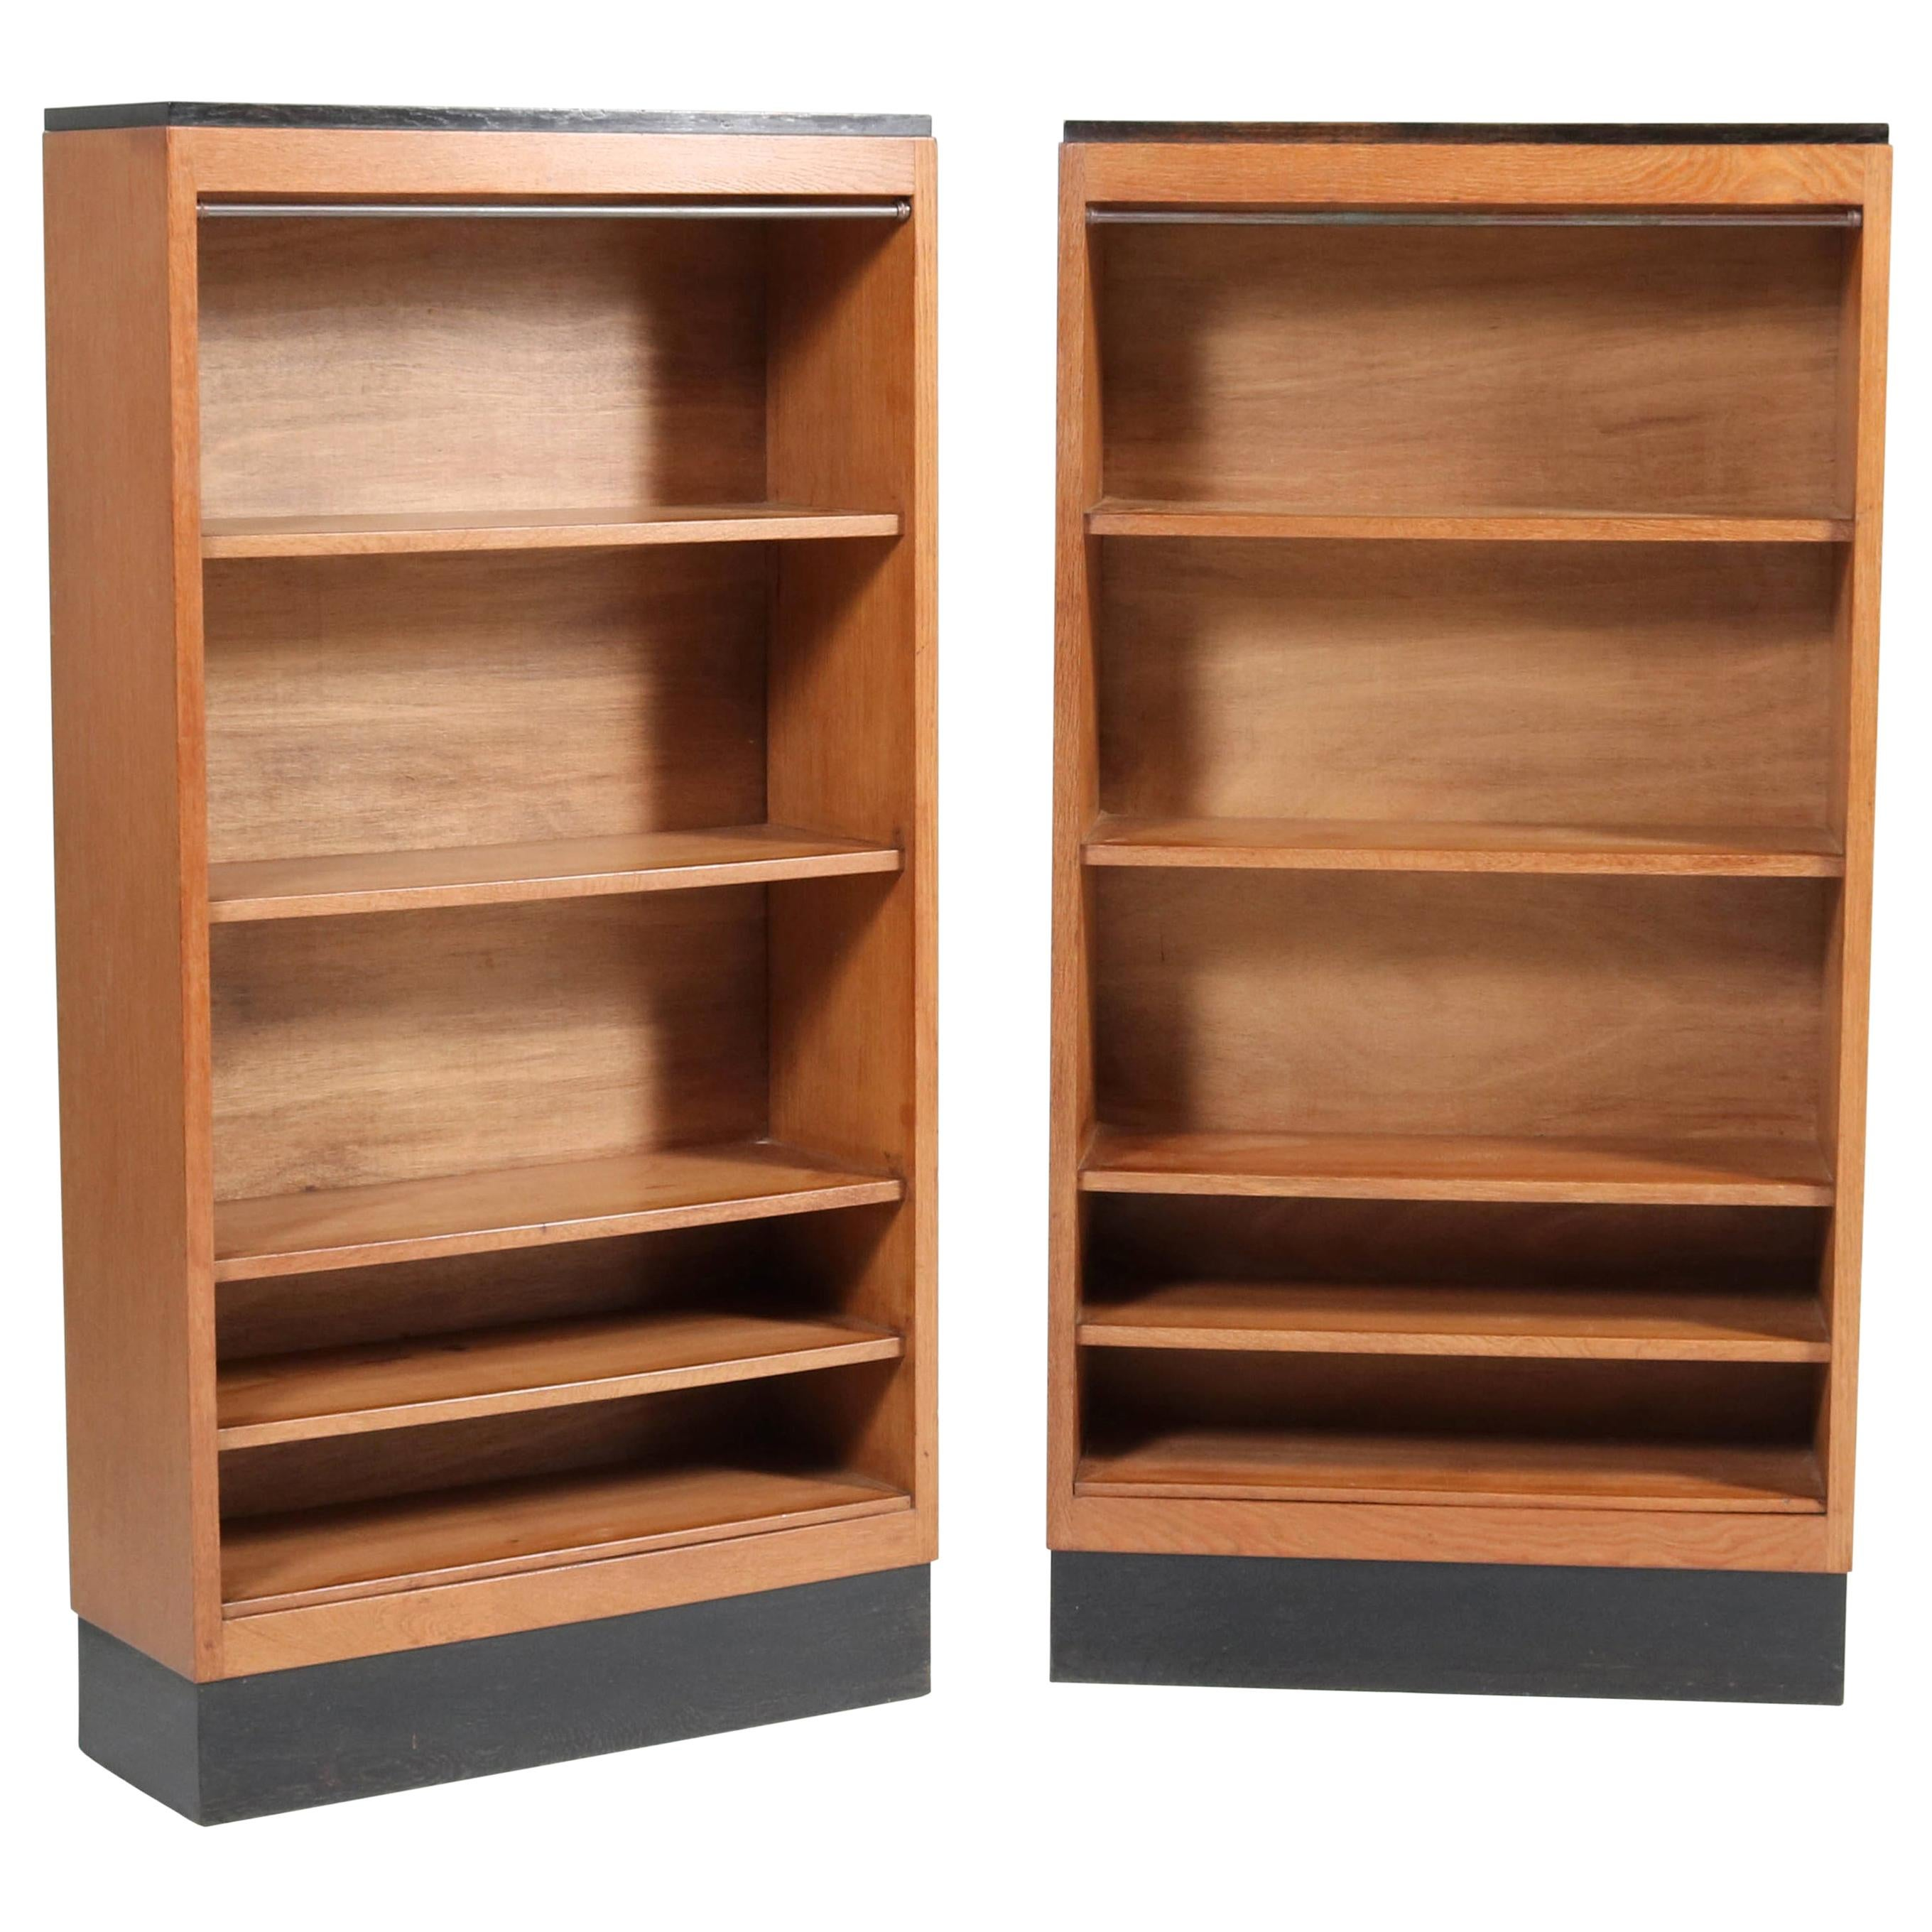 Oak Art Deco Haagse School Open Bookcases by H. Fels for L.O.V. Oosterbeek, 1924